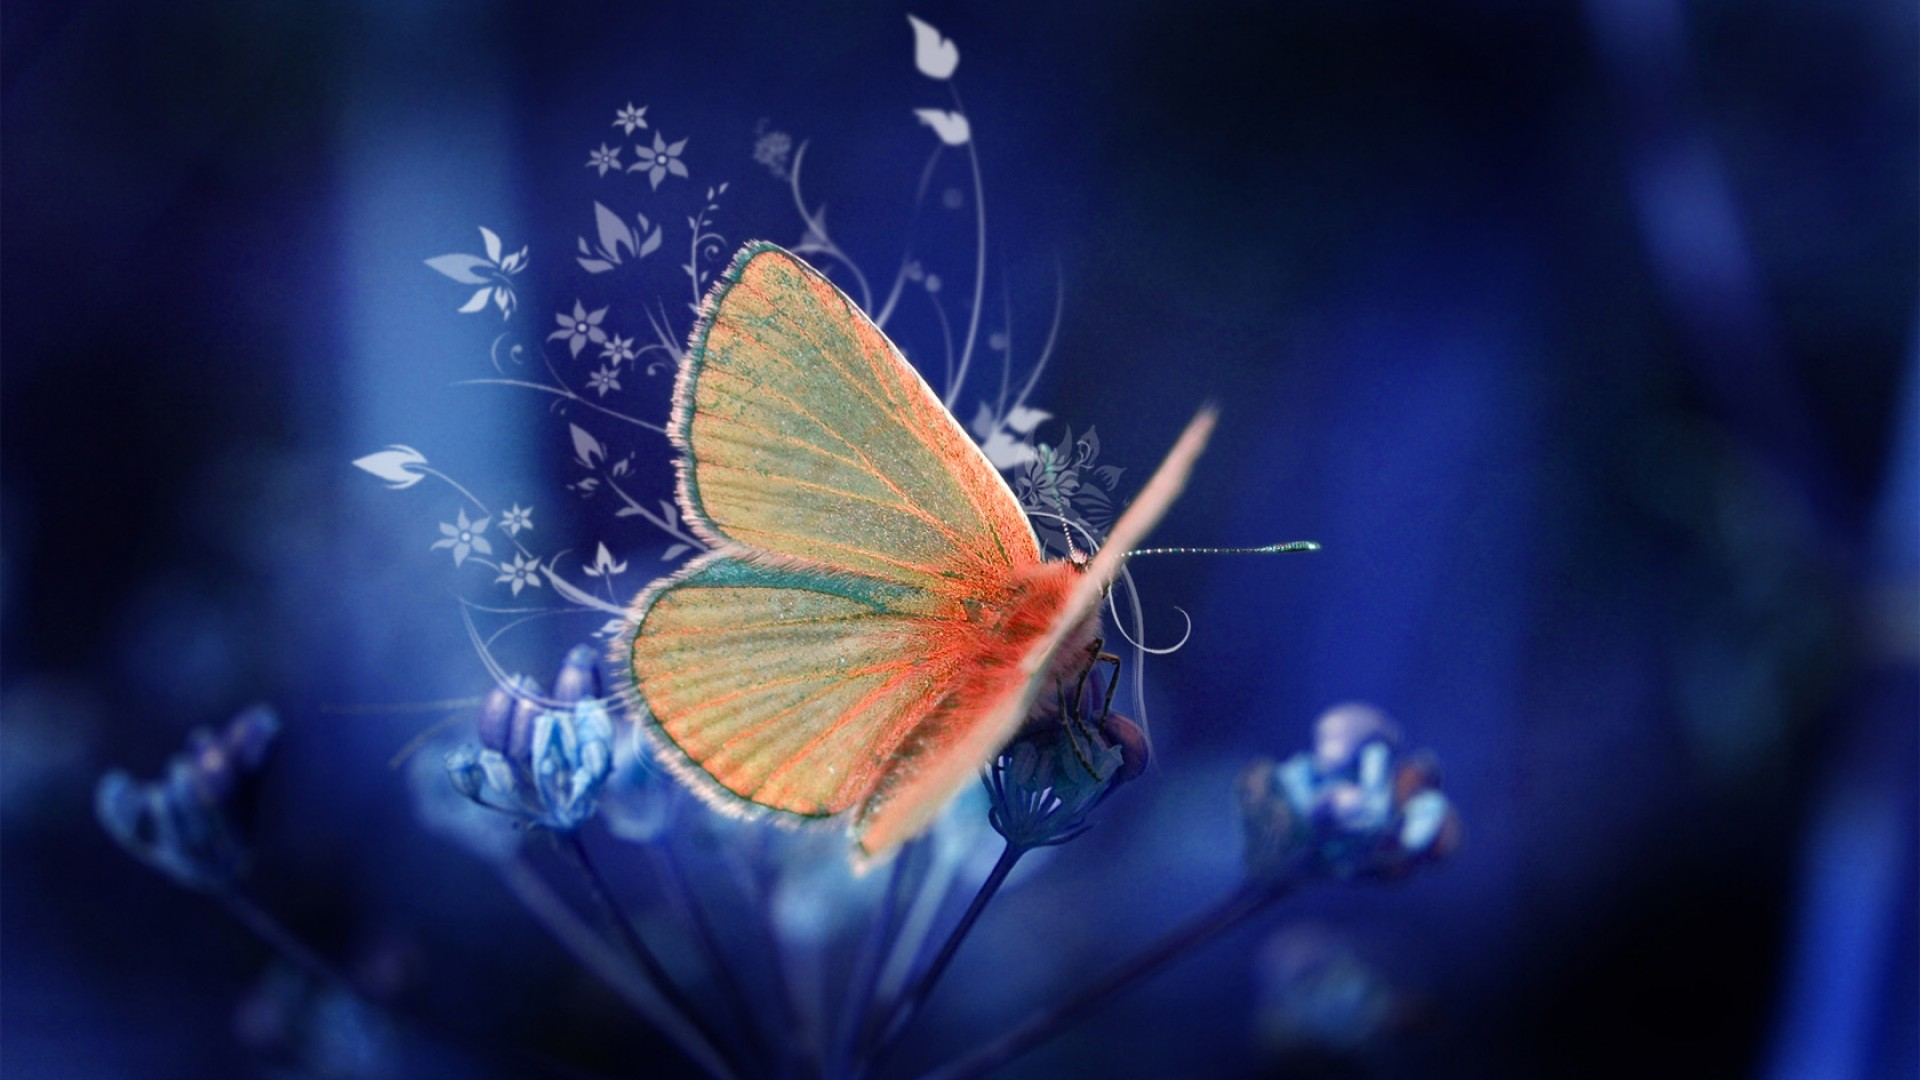 butterfly wallpapers flying - photo #18